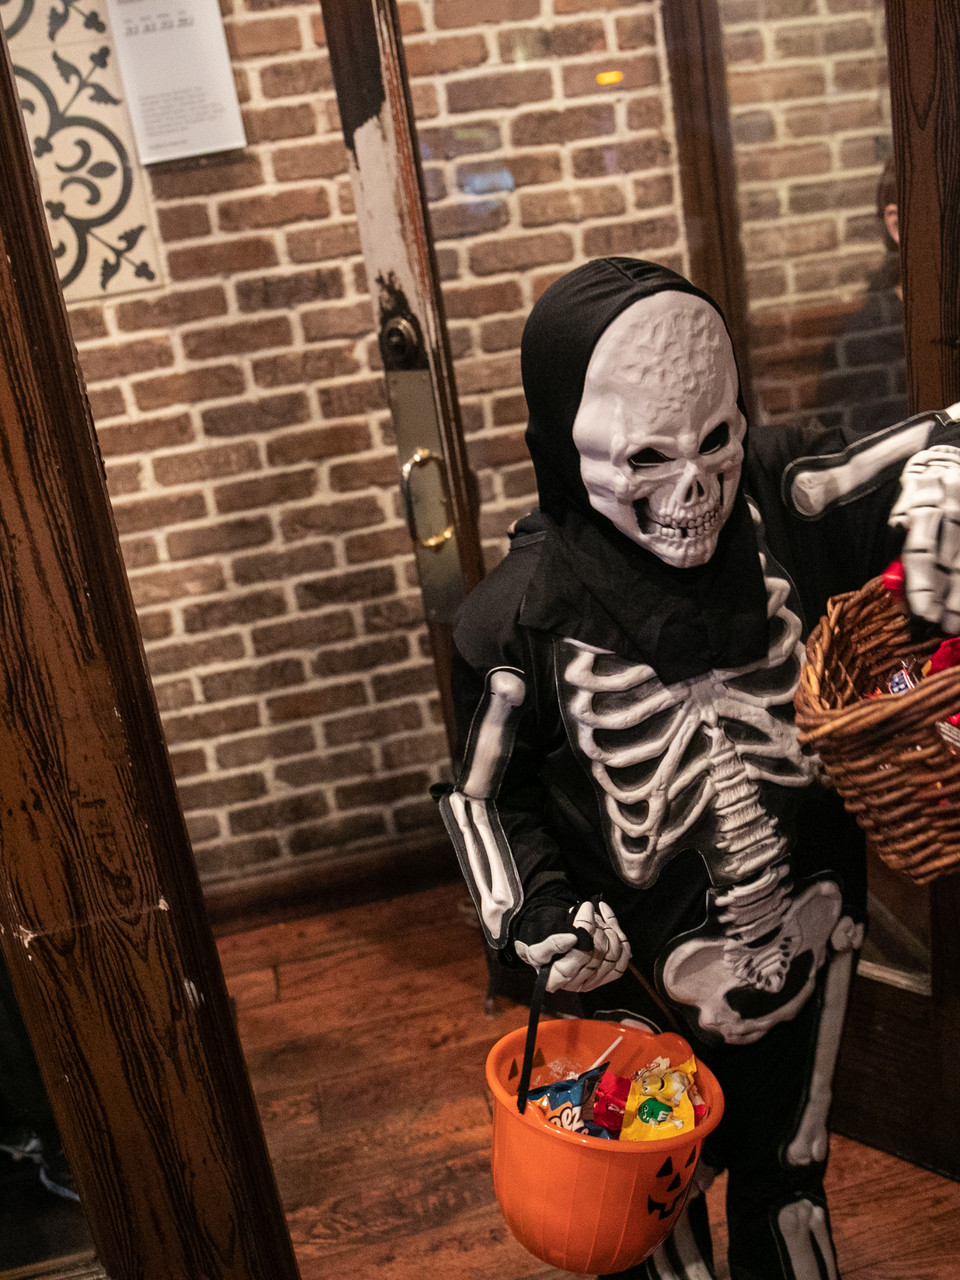 Tyrone Halloween Parade 2020 Where, when is Trick or Treat happening this Halloween season? | WJAC